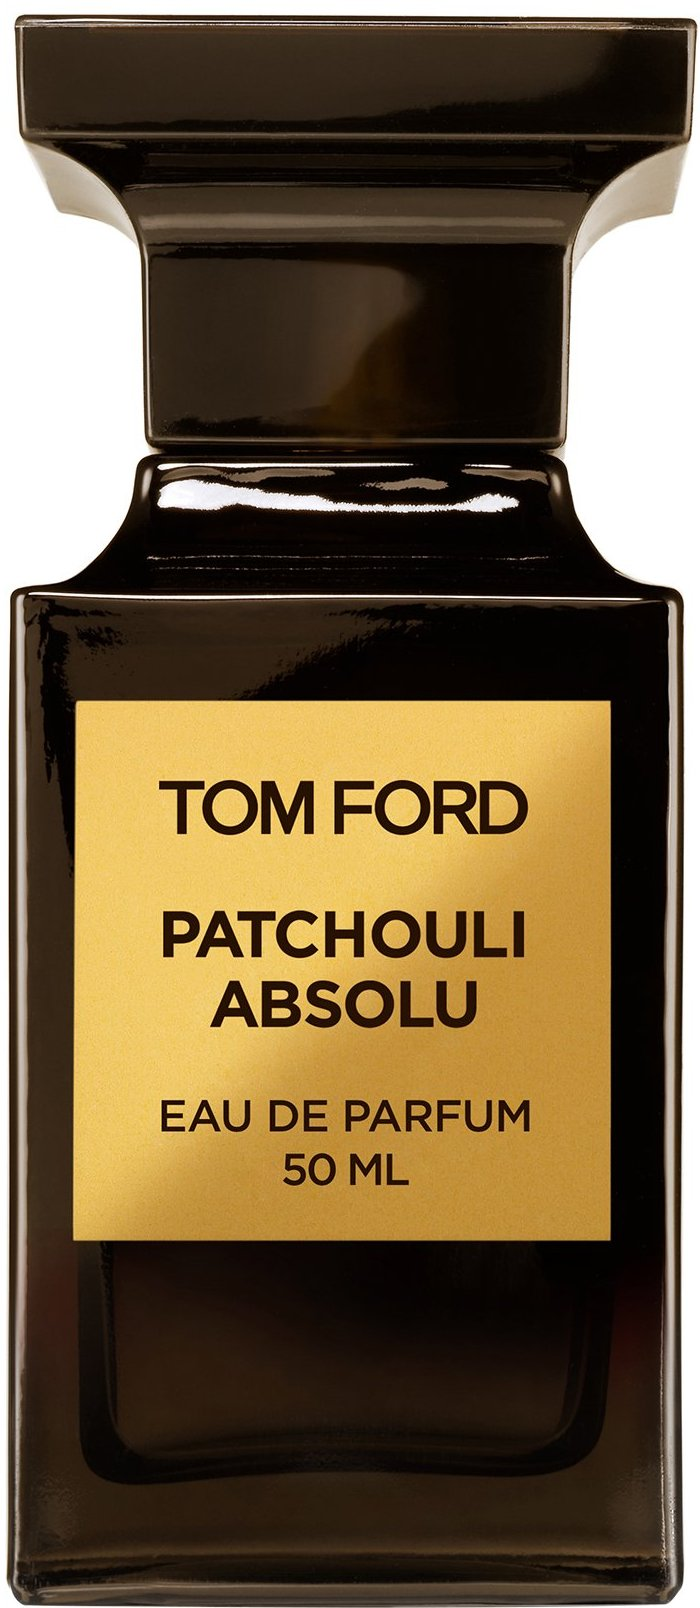 Tom Ford Patchouli Absolu Eau de Parfum 50 ml